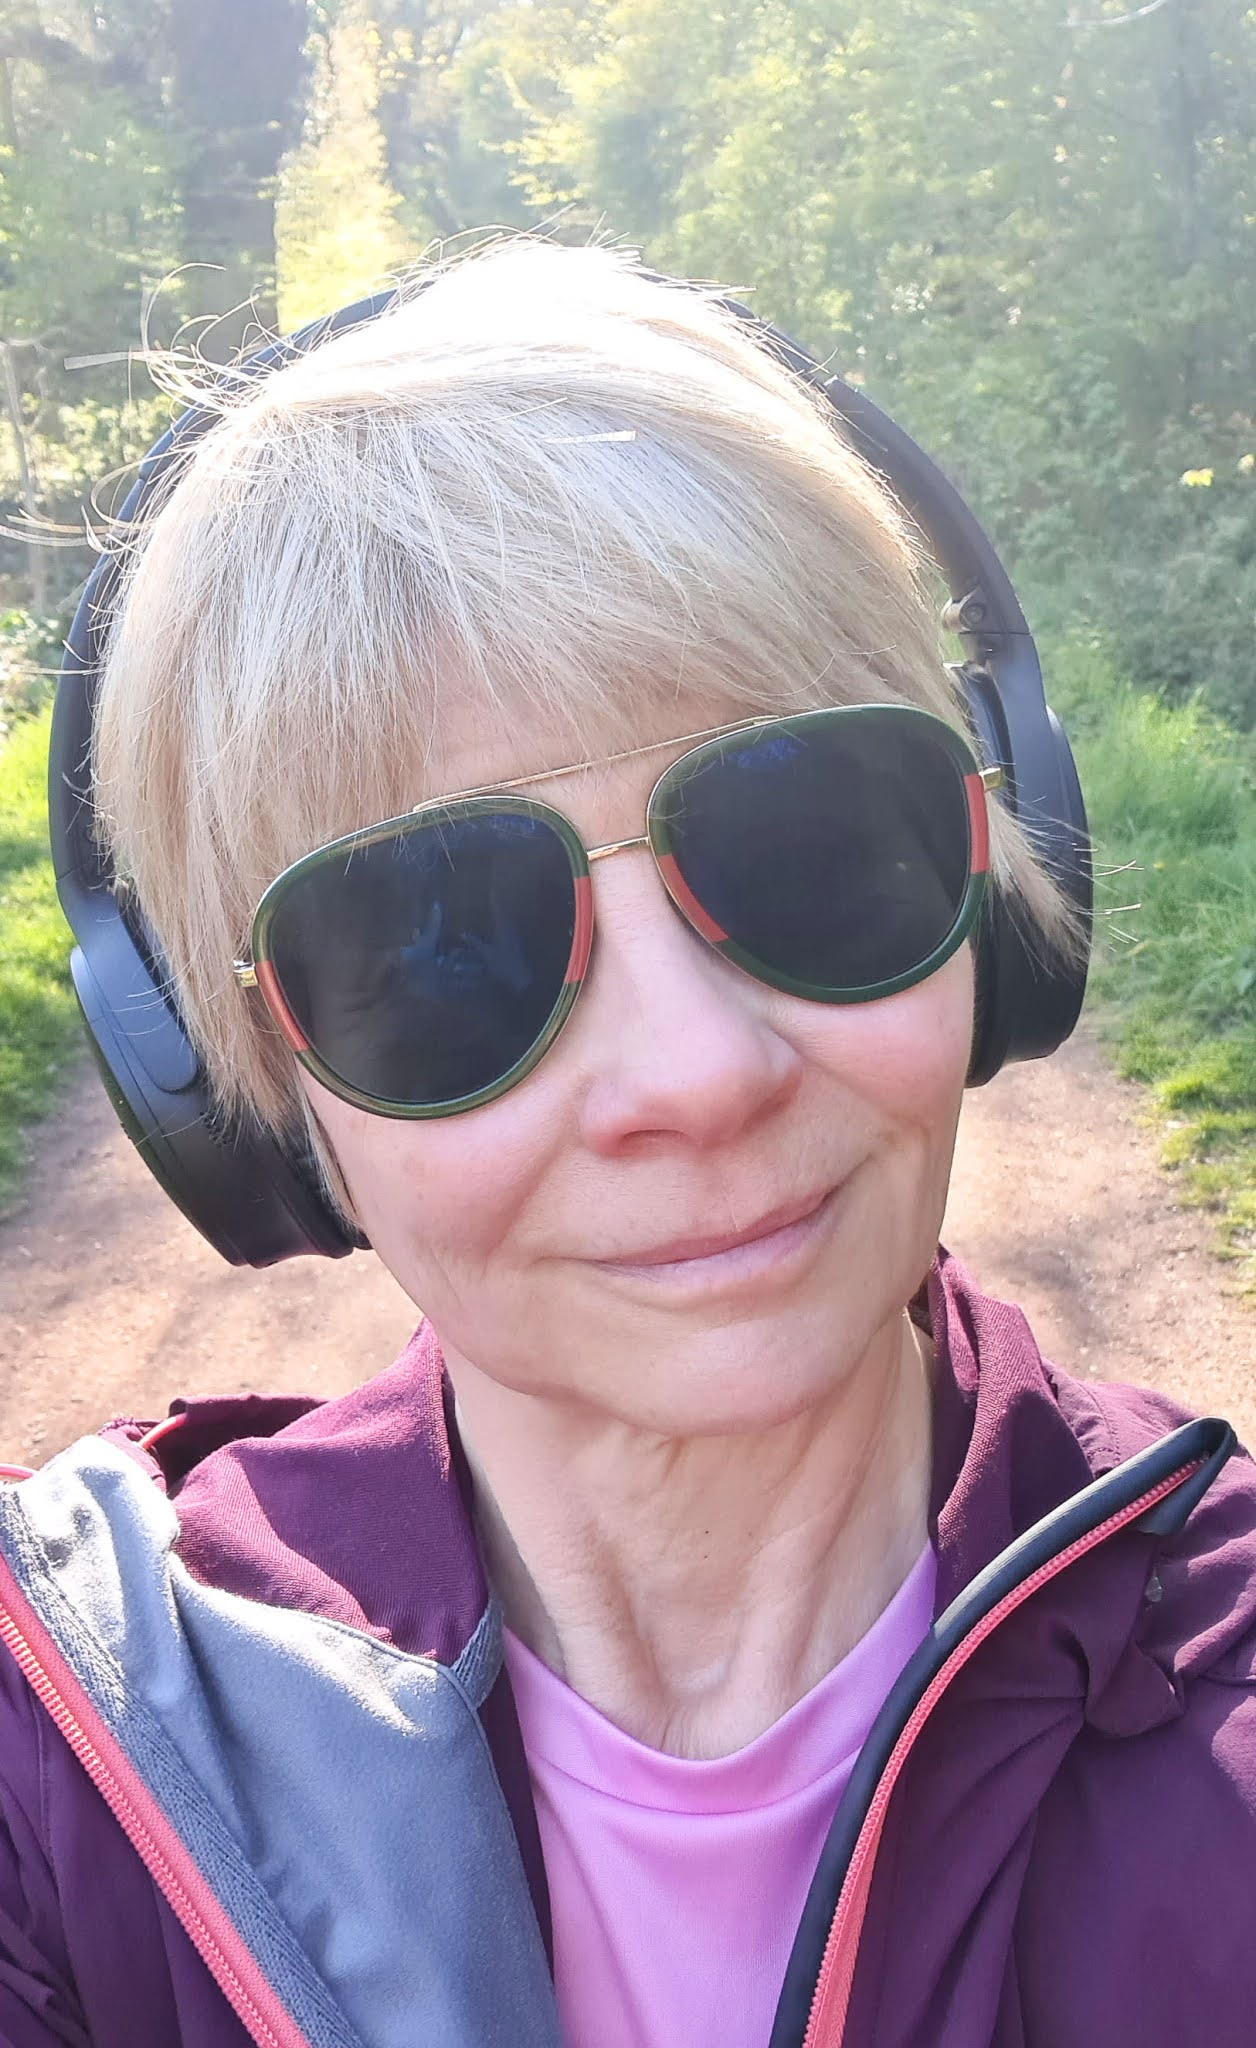 Is This Mutton writer Gail Hanlon walking in forest with headphones listening to a podcast